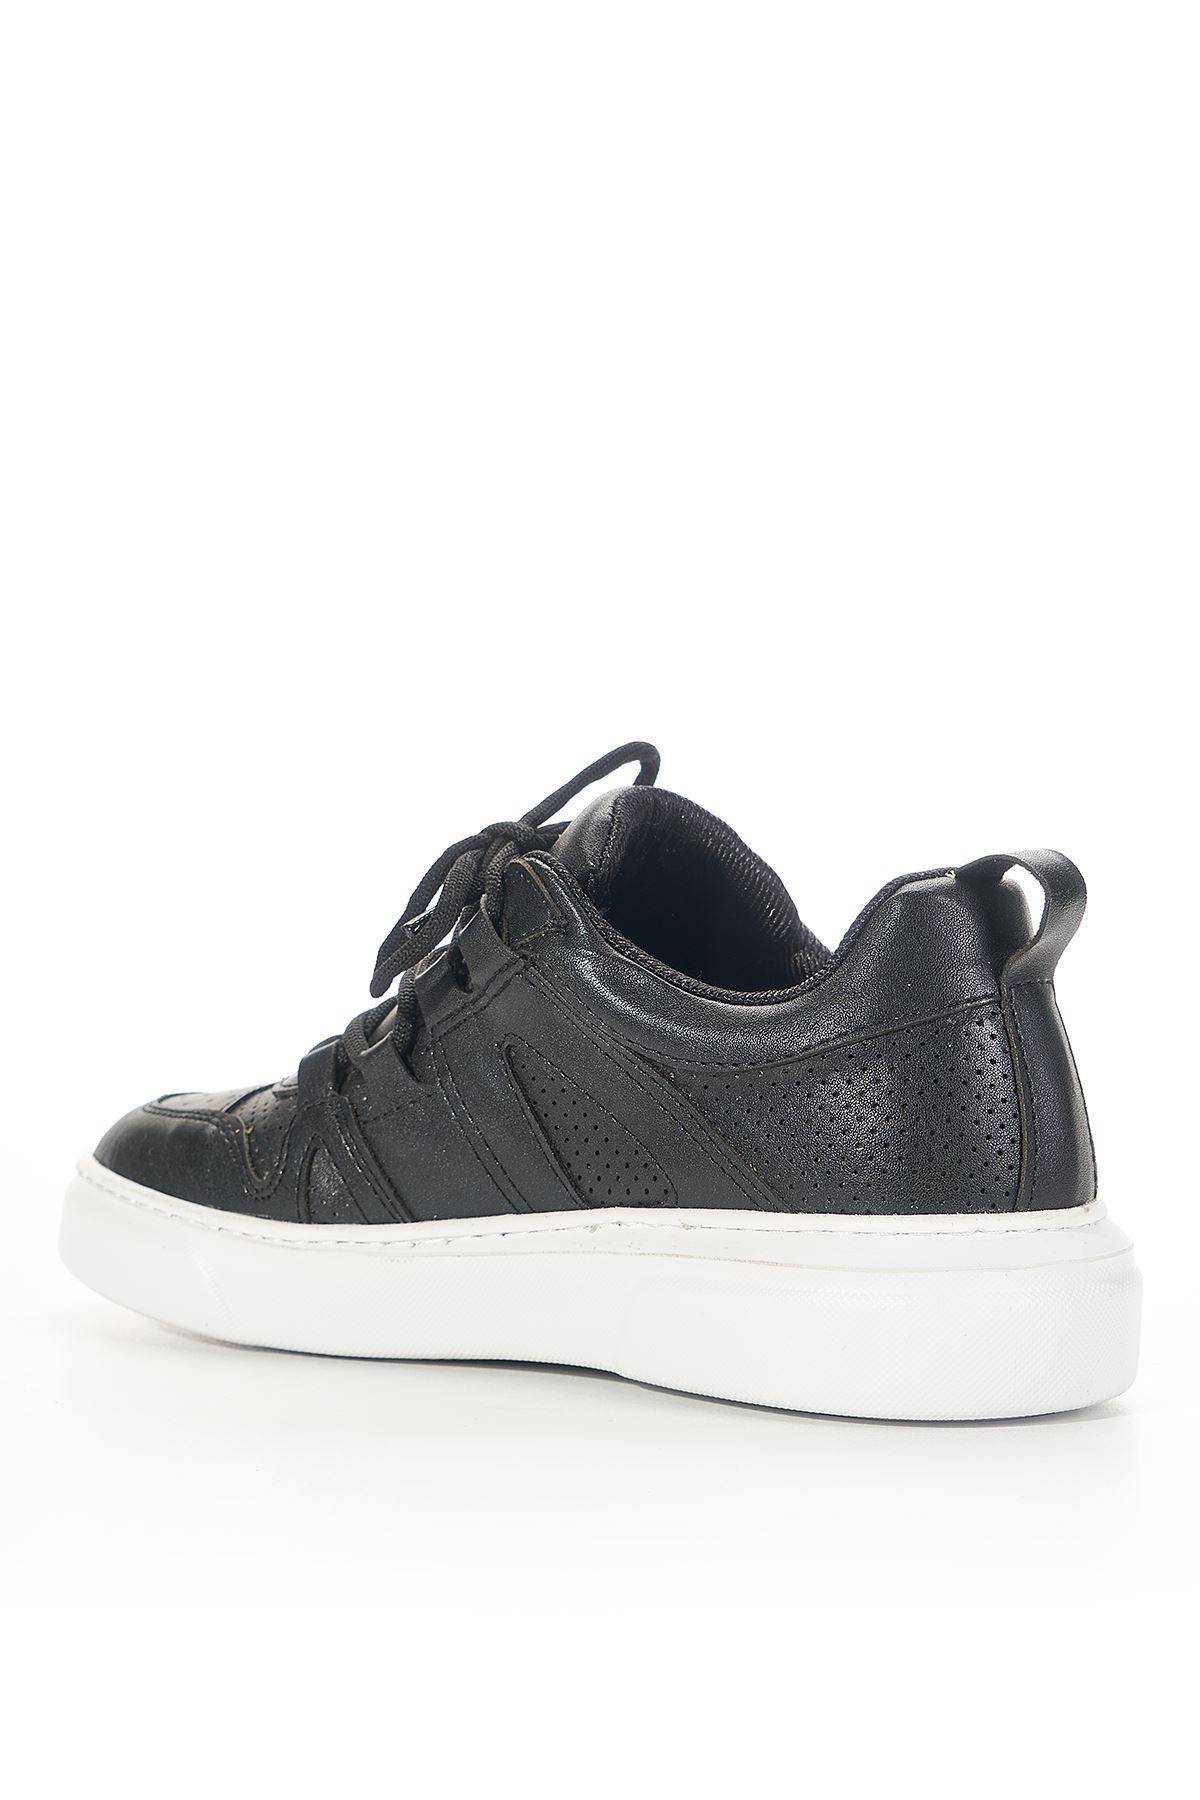 Tortuga Black Women Sneakers